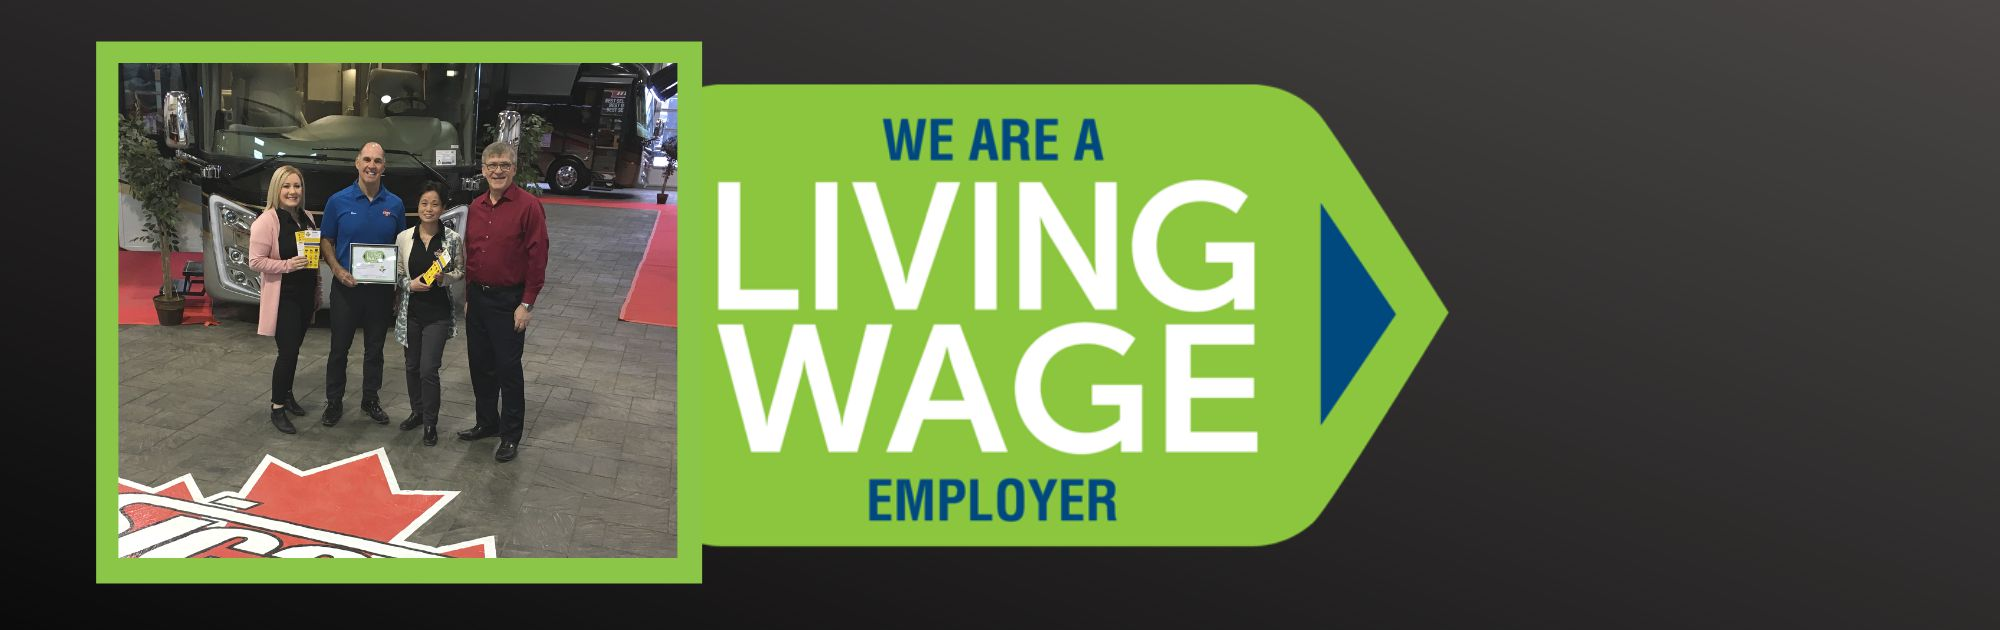 Sicard RV is a Living Wage Employer - Banner